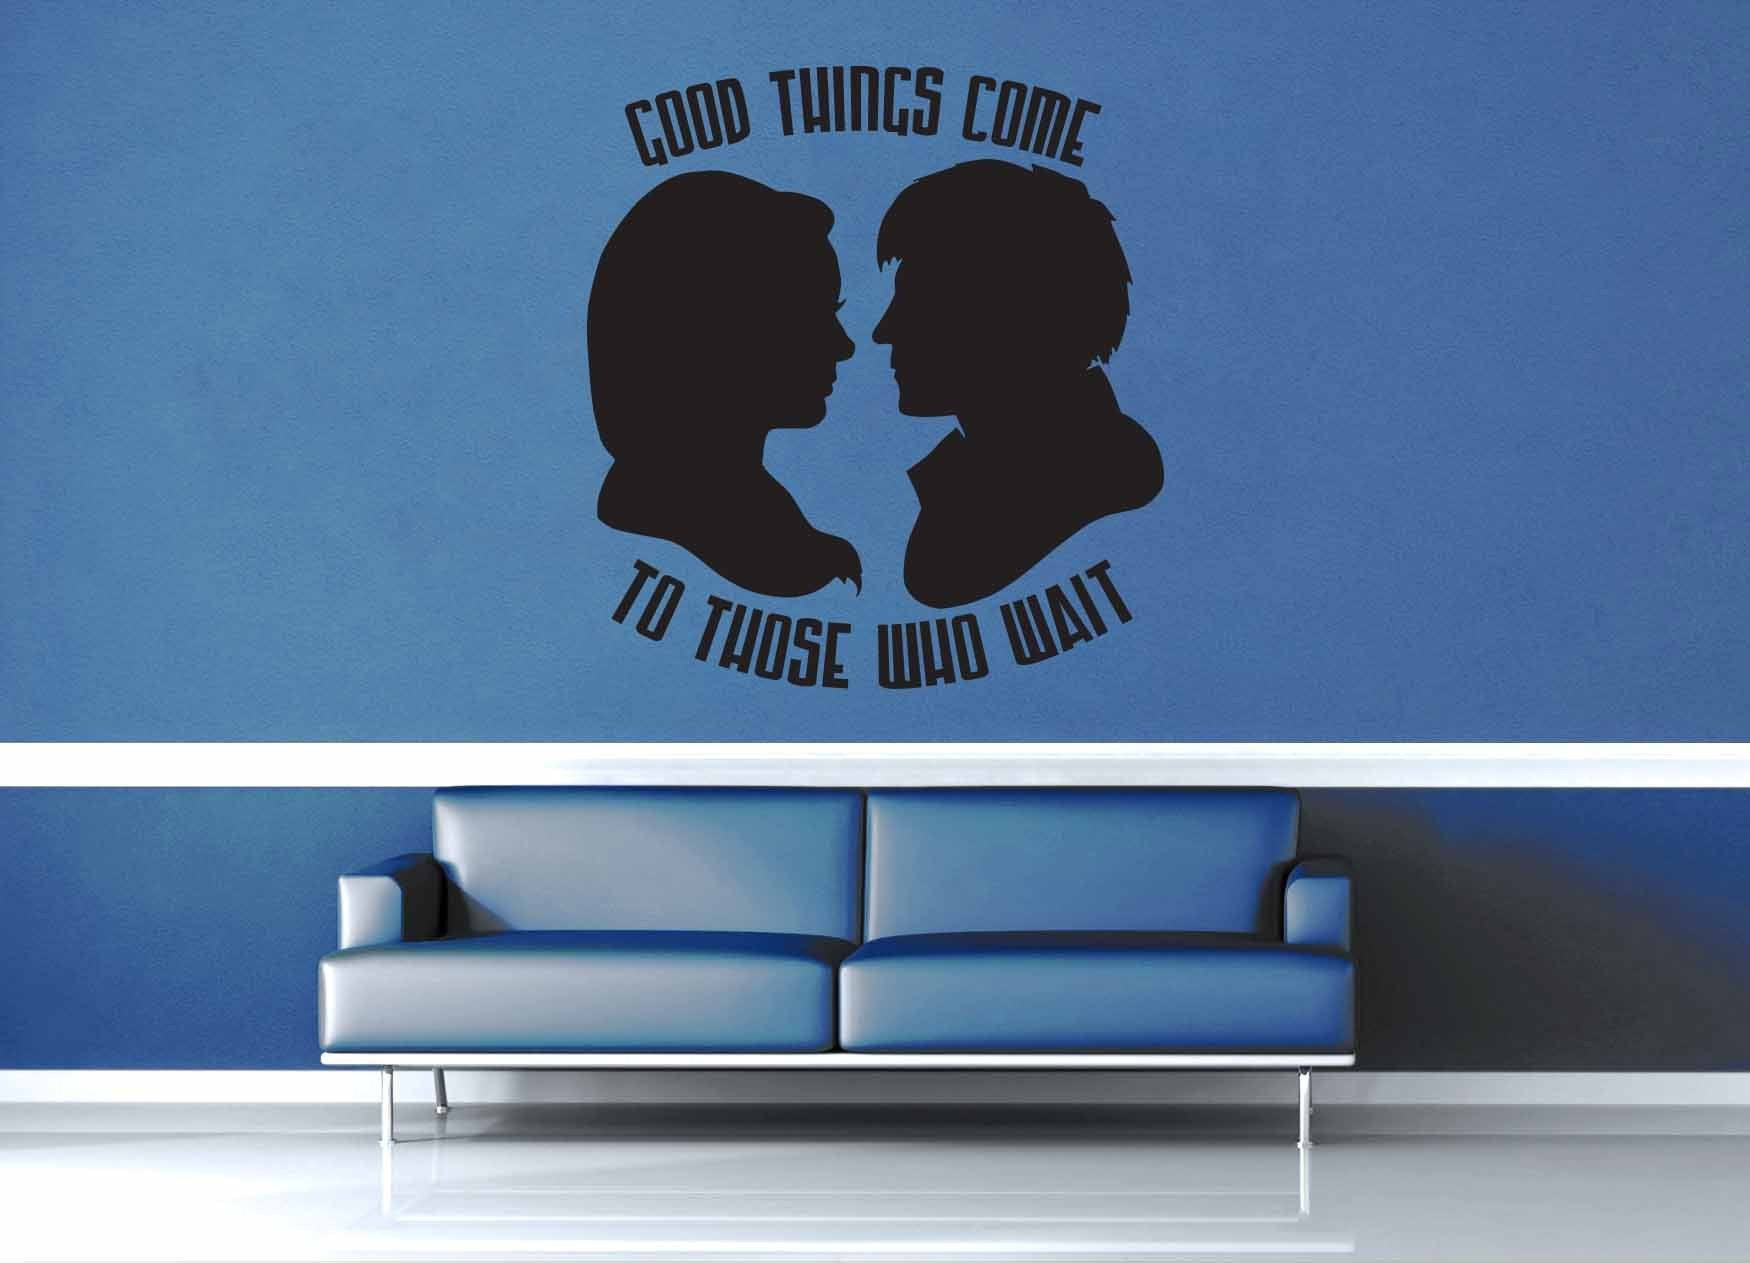 Good Things Come to Those Who Wait - Doctor Who Quote - Wall Decal